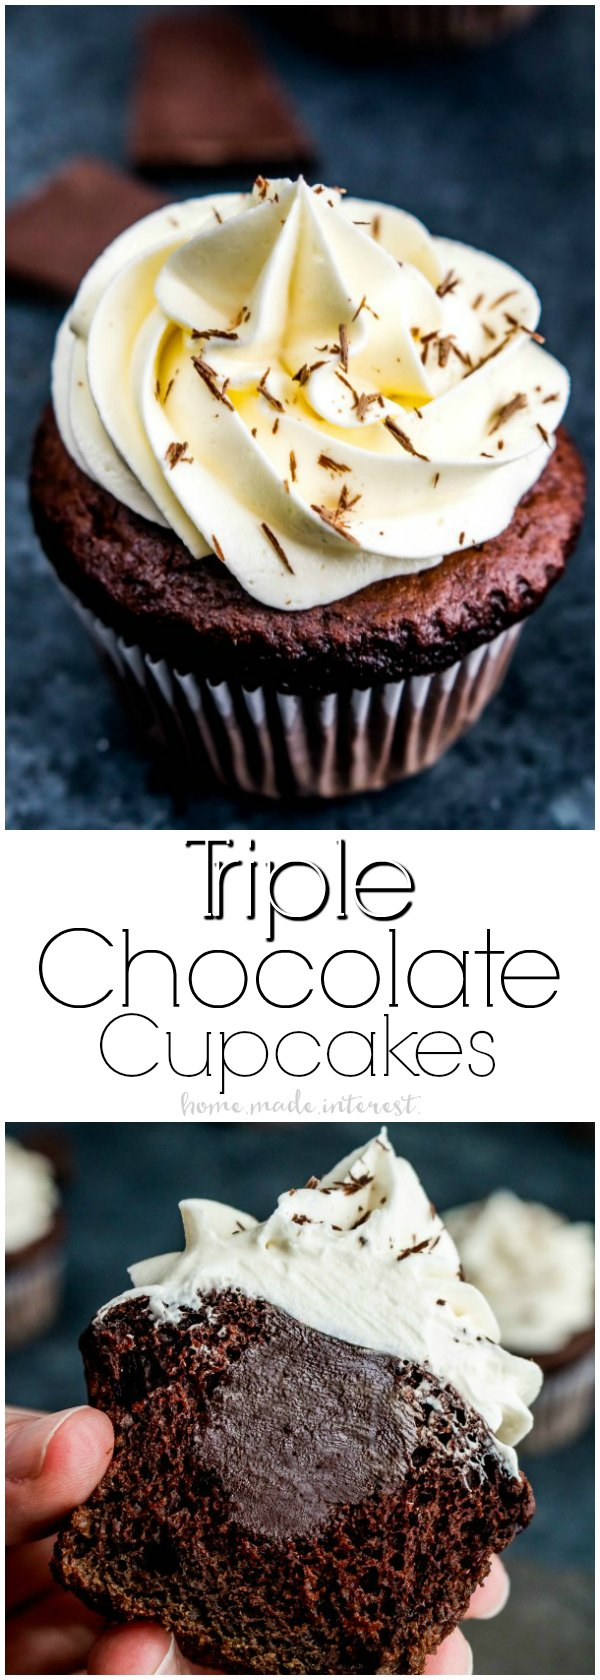 Triple Chocolate Cupcakes | These decadent Triple Chocolate Cupcakes are filled with a creamy chocolate ganache and topped with a luscious white chocolate frosting! It's a rich chocolate dessert recipe everyone will love. Make this cupcake recipe for your sweetie as a Valentine's Day dessert recipe and show them how much you love them! #chocolate #cupcake #dessertrecipe #dessert #valentinesday